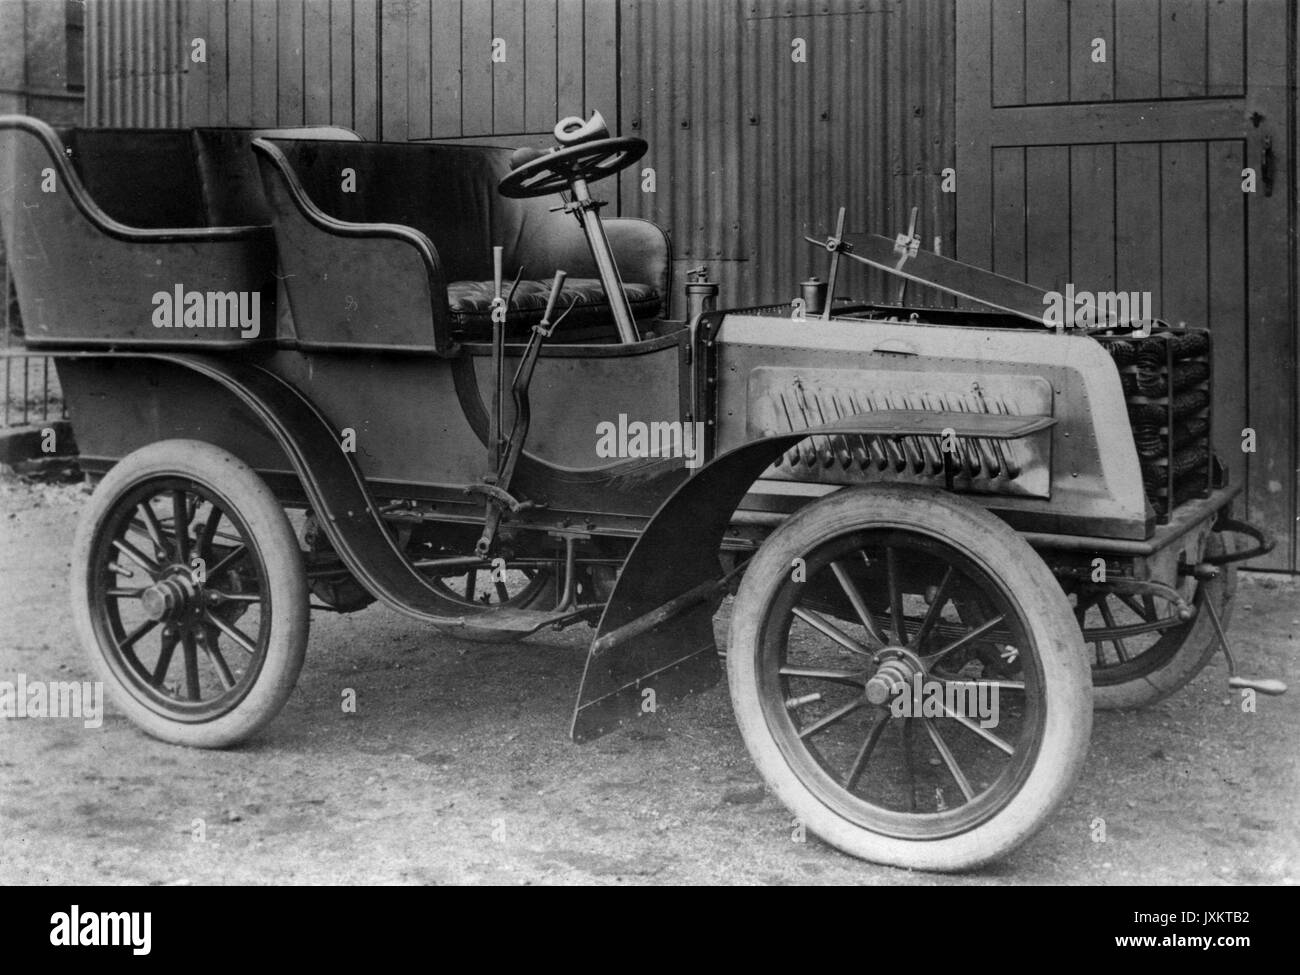 1903 Automobile Stock Photos & 1903 Automobile Stock Images - Alamy